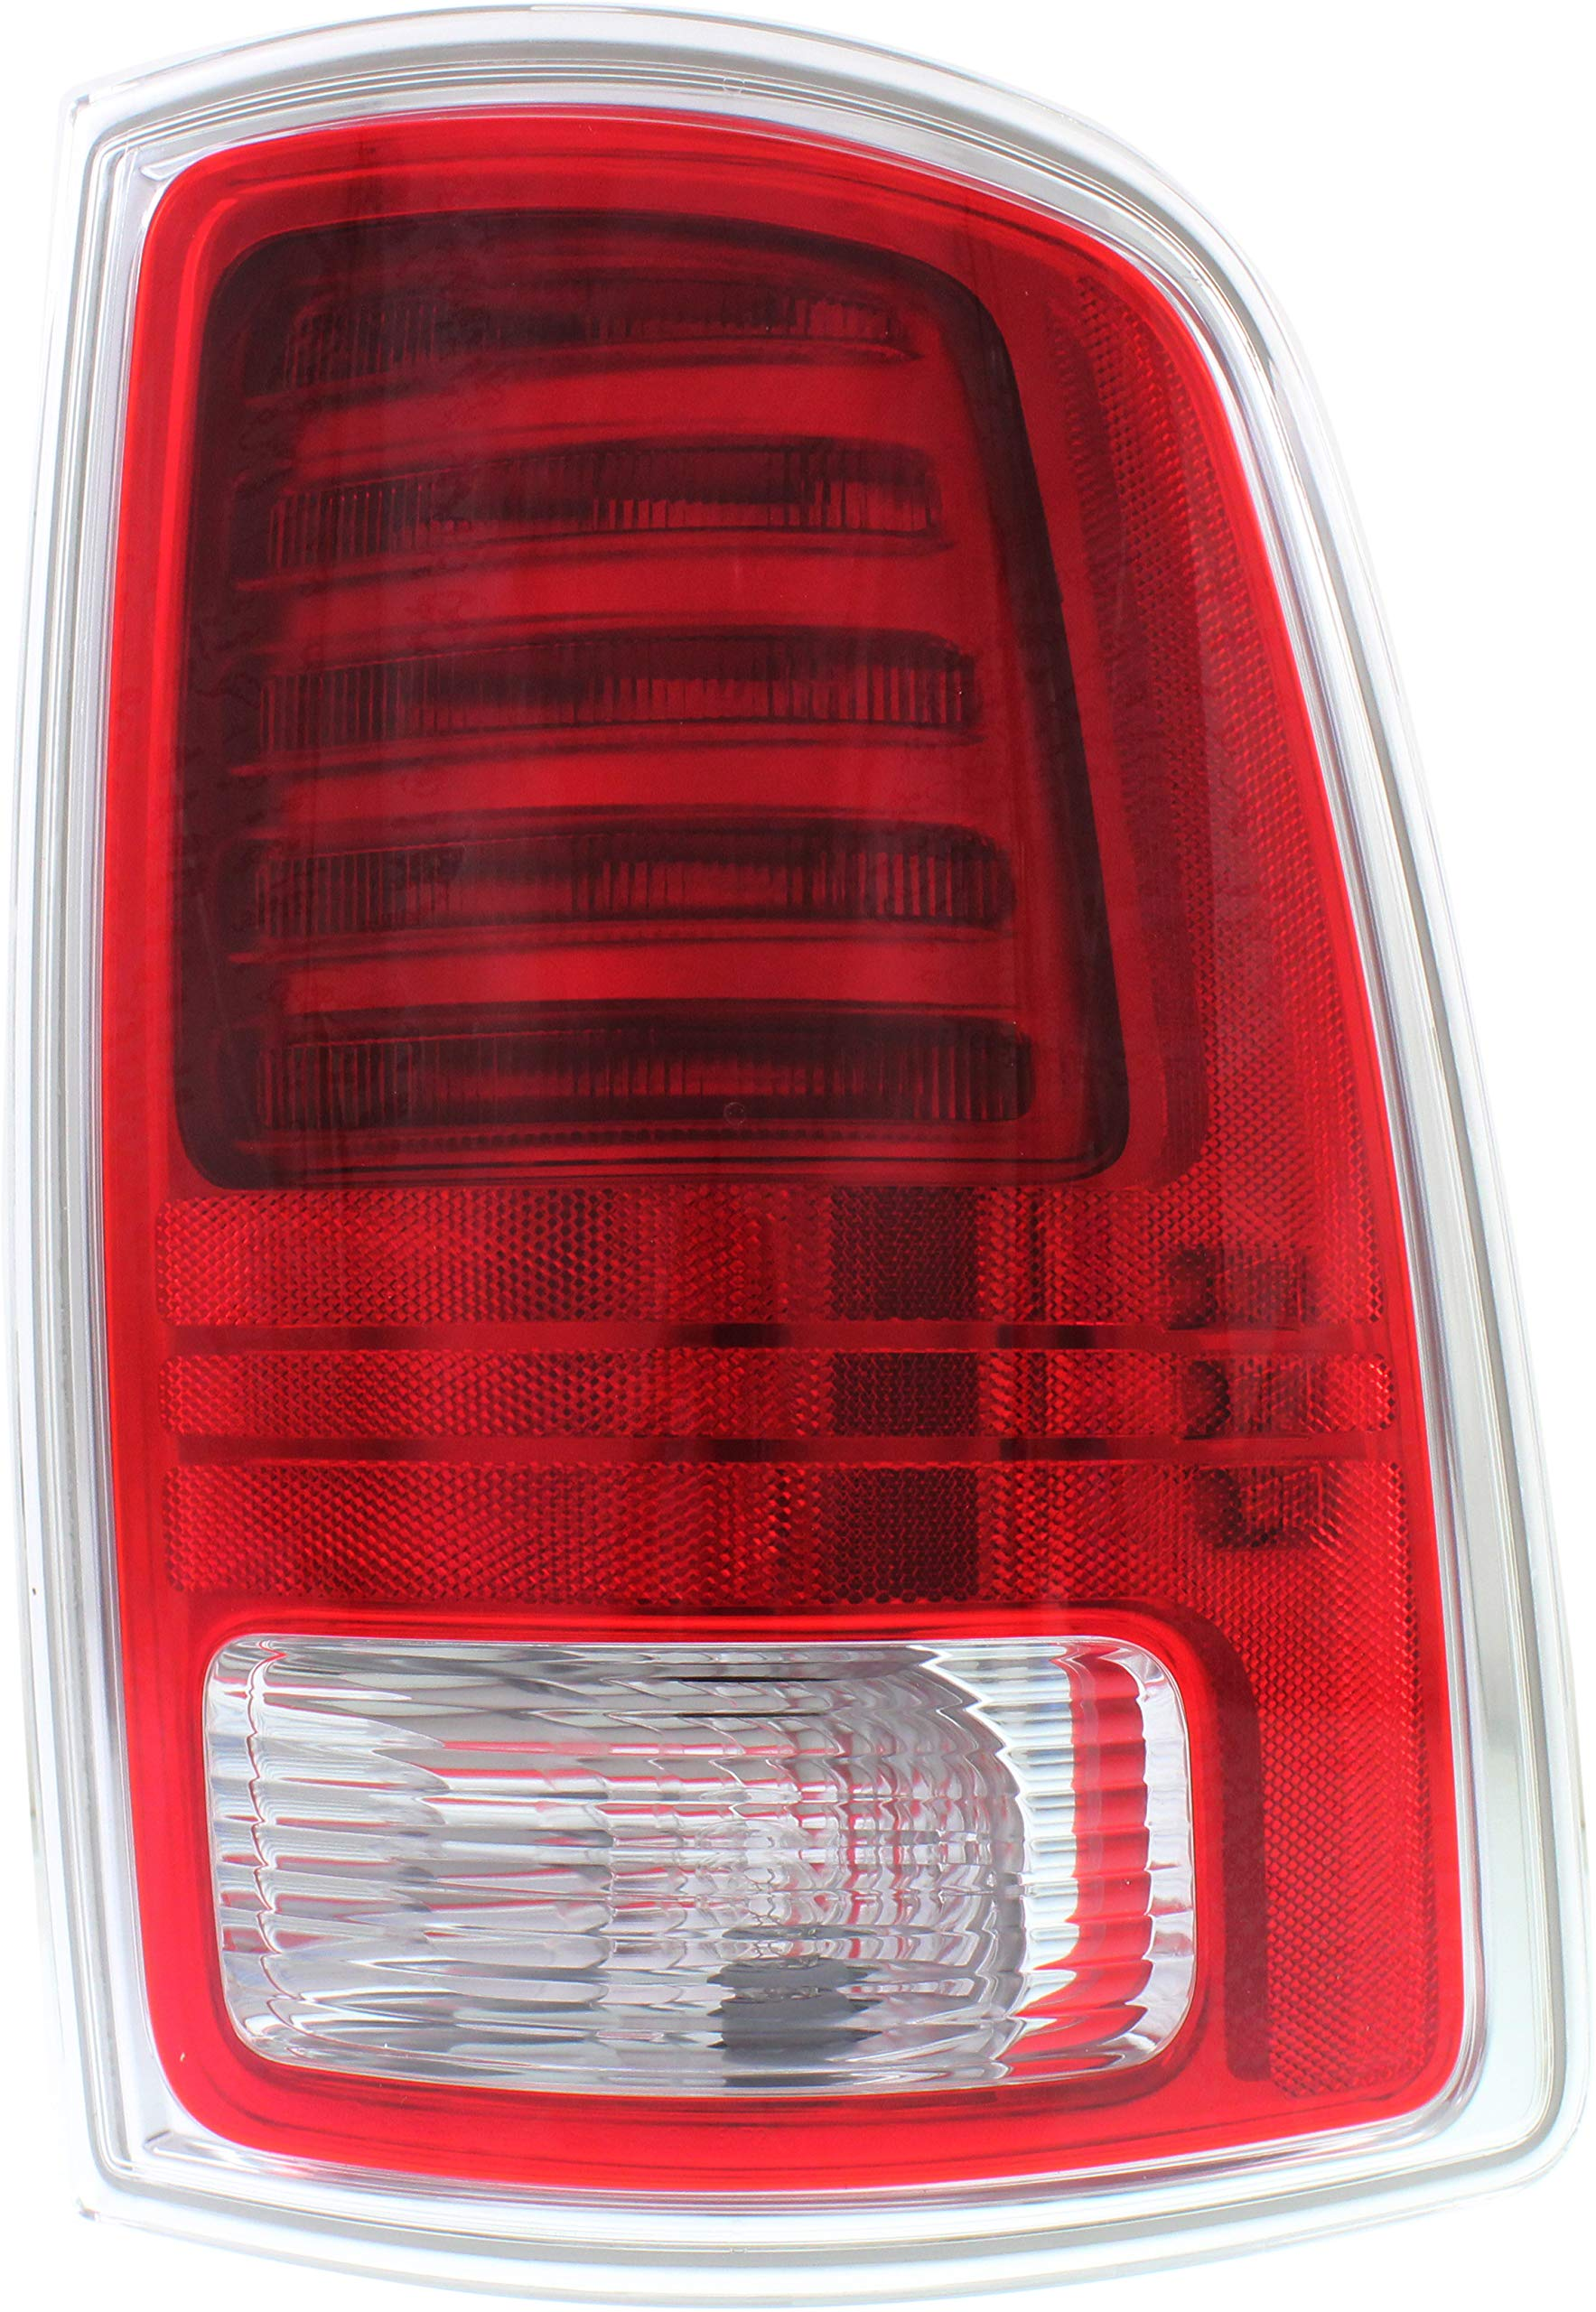 Tail Light Compatible with DODGE RAM FULL SIZE P/U 2013-2018 RH Assembly Premium Type Chrome Interior Clear/Red Lens All Cab Types